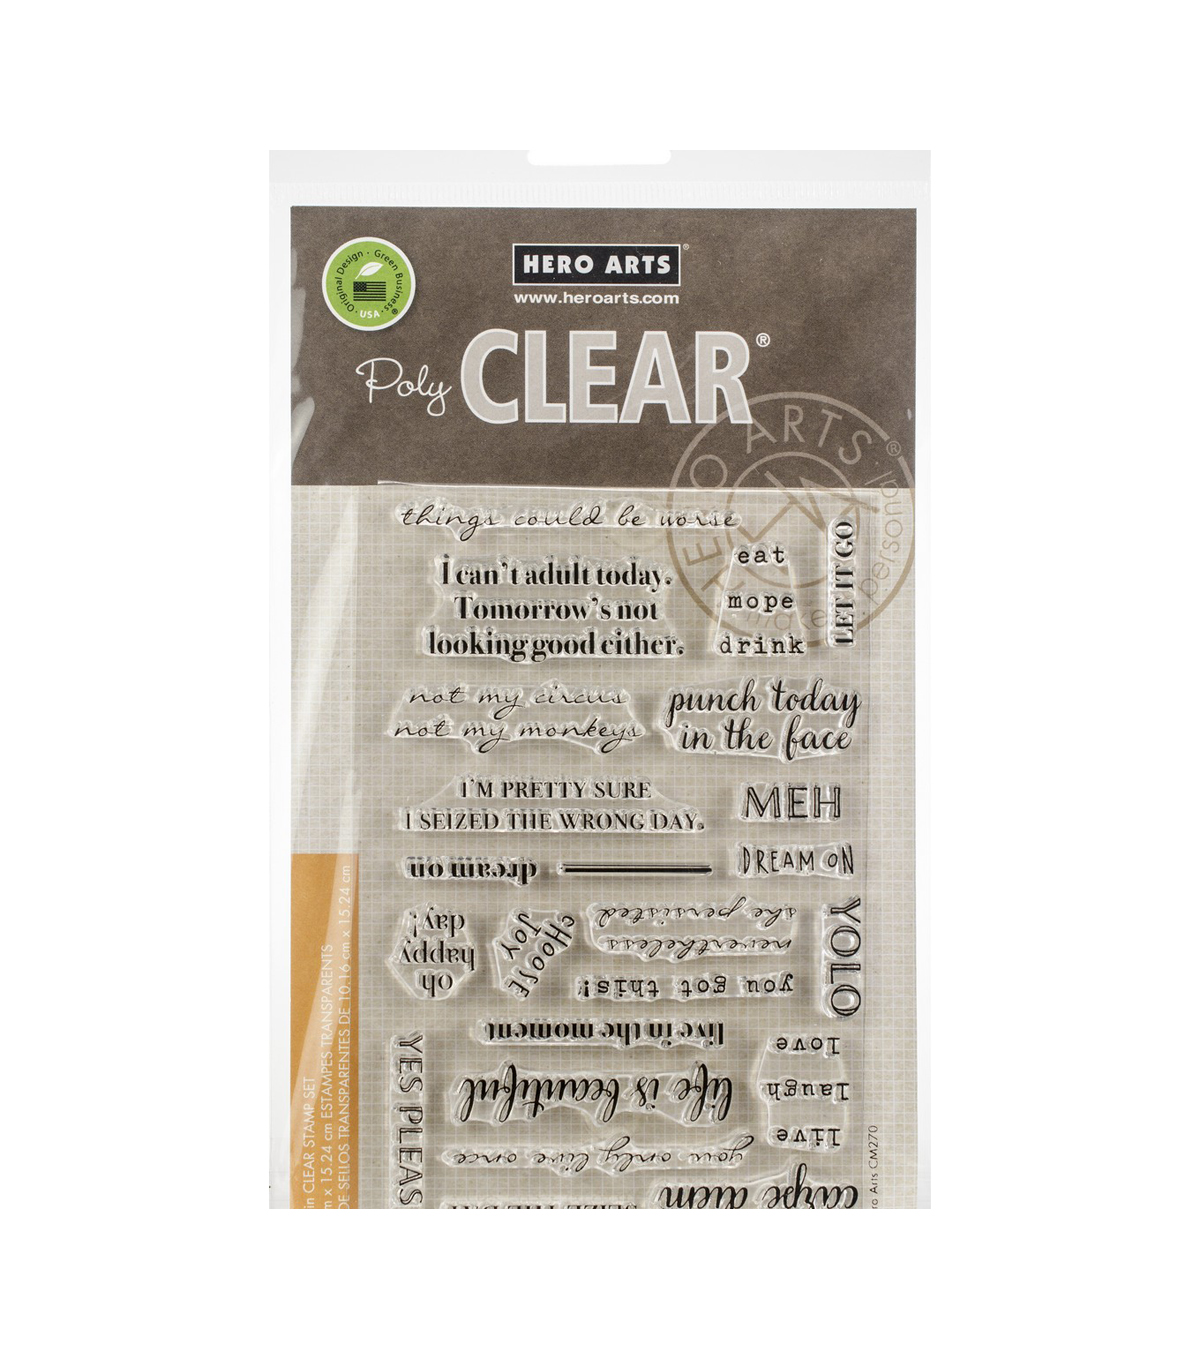 Hero Arts 23 pk Poly Clear Stamps-To Seize or Not to Seize